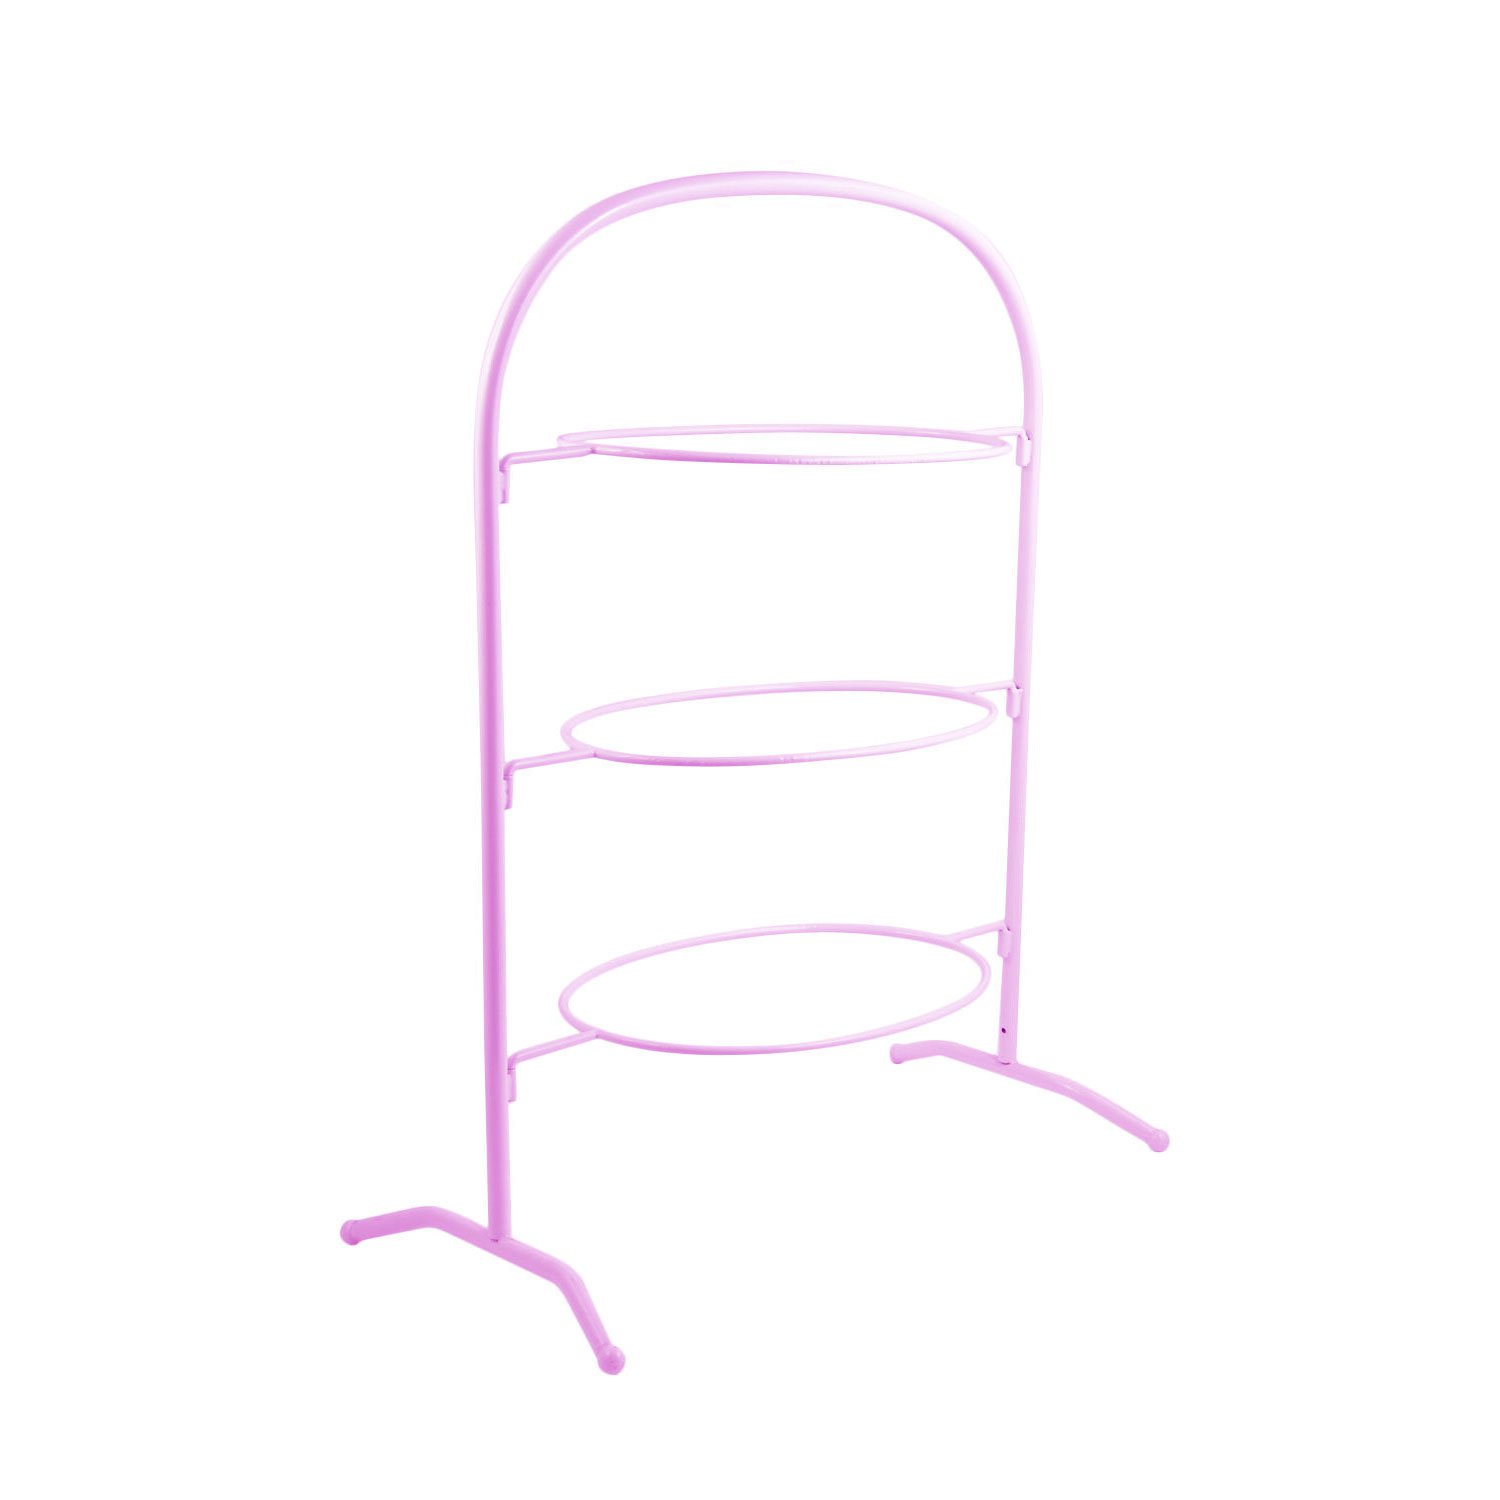 30 H x 26 W inch Wire Stand for 2090 Sandstone Dusty Rose